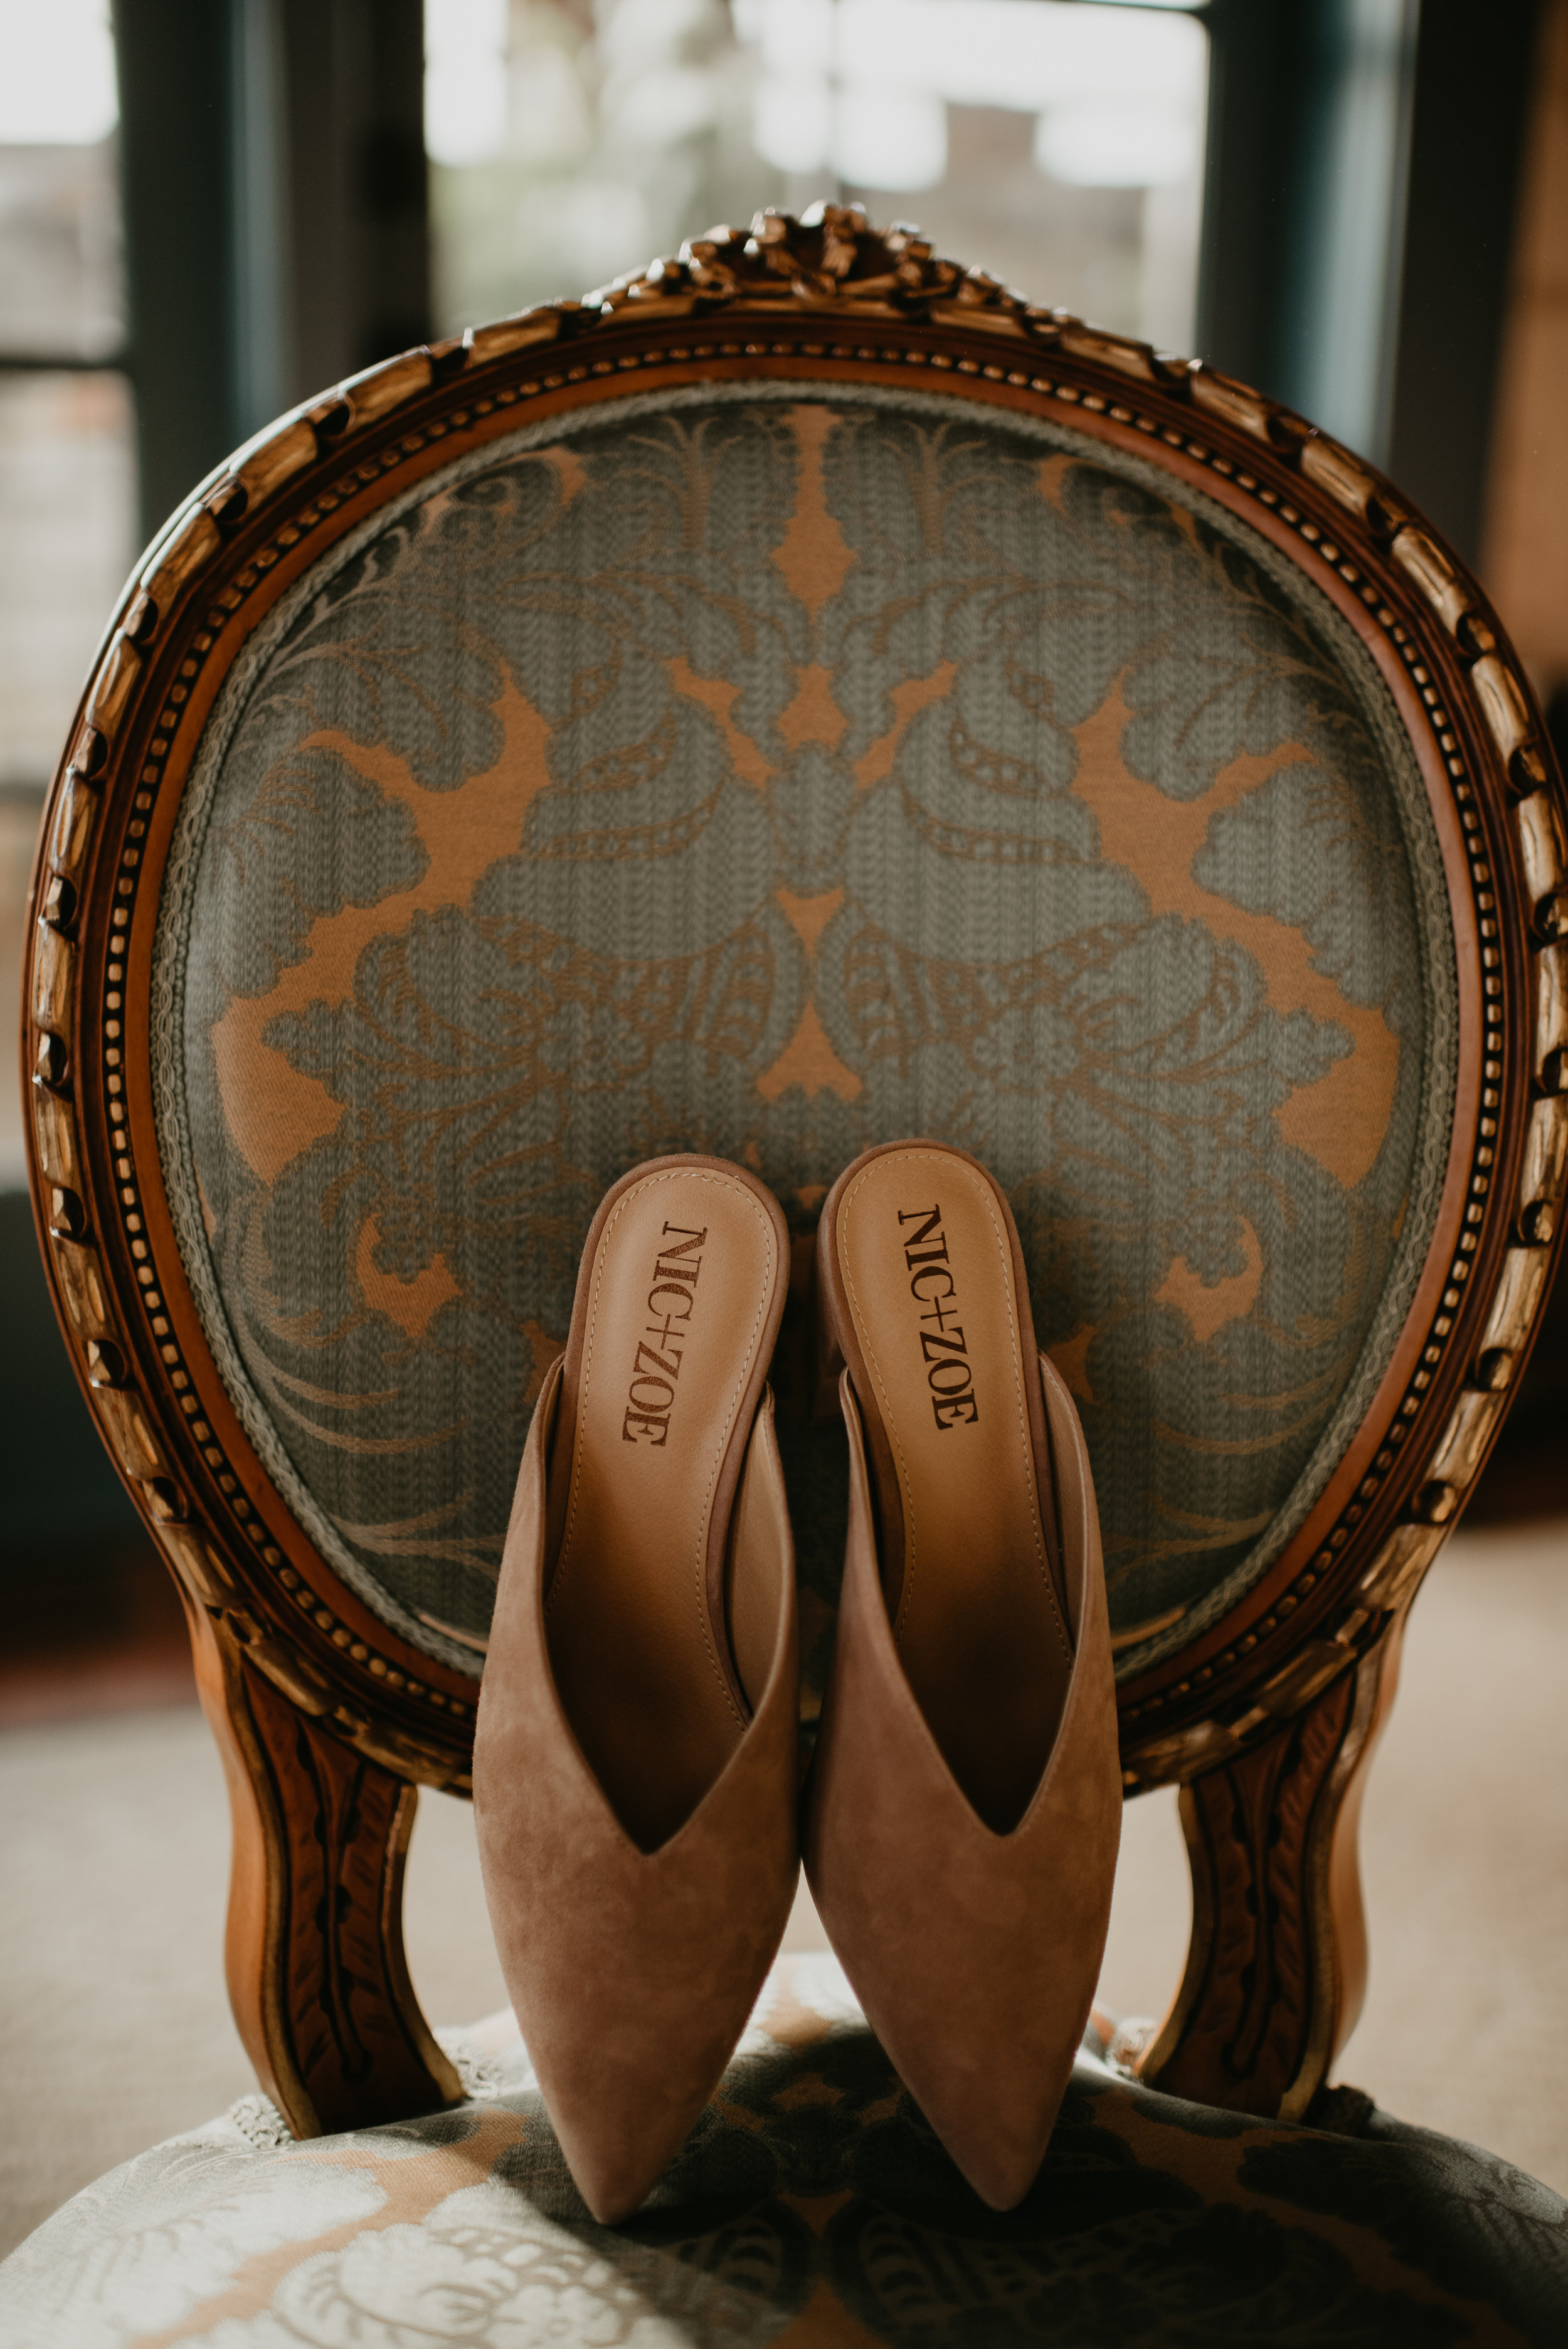 Nic+Zoe Shoes - Beau + Britty - Dutch Carnival Styled Elopement Shoot at The Ruins, Seattle, WA - Seattle Elopement Photographer